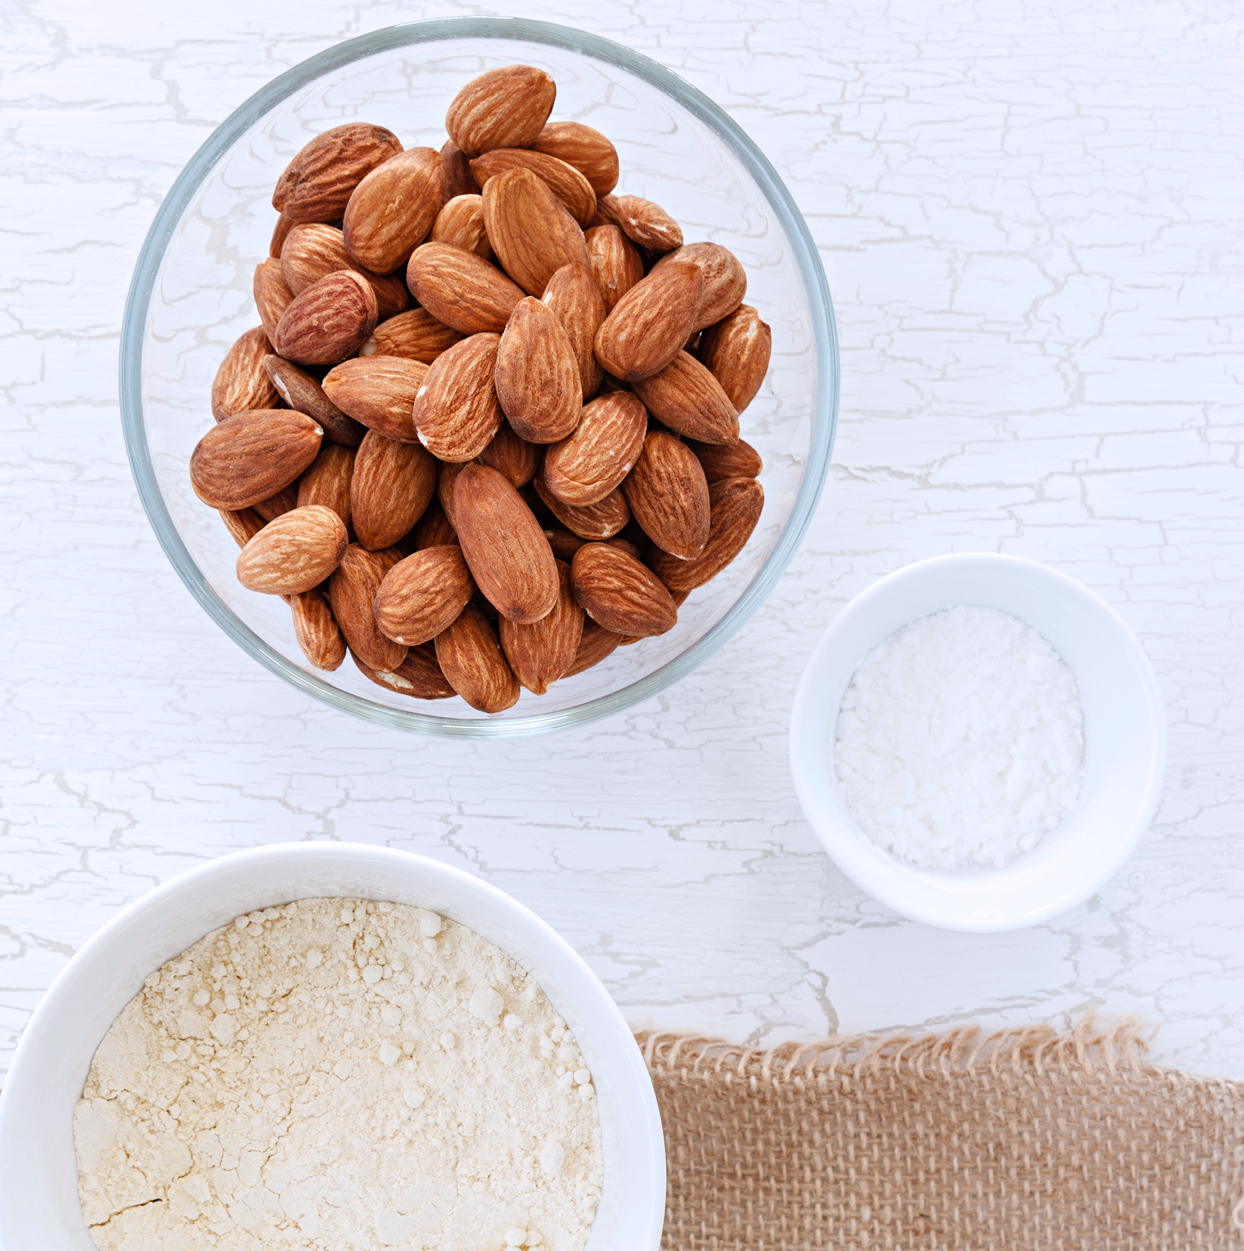 almonds, almond flour, and almond meal on table